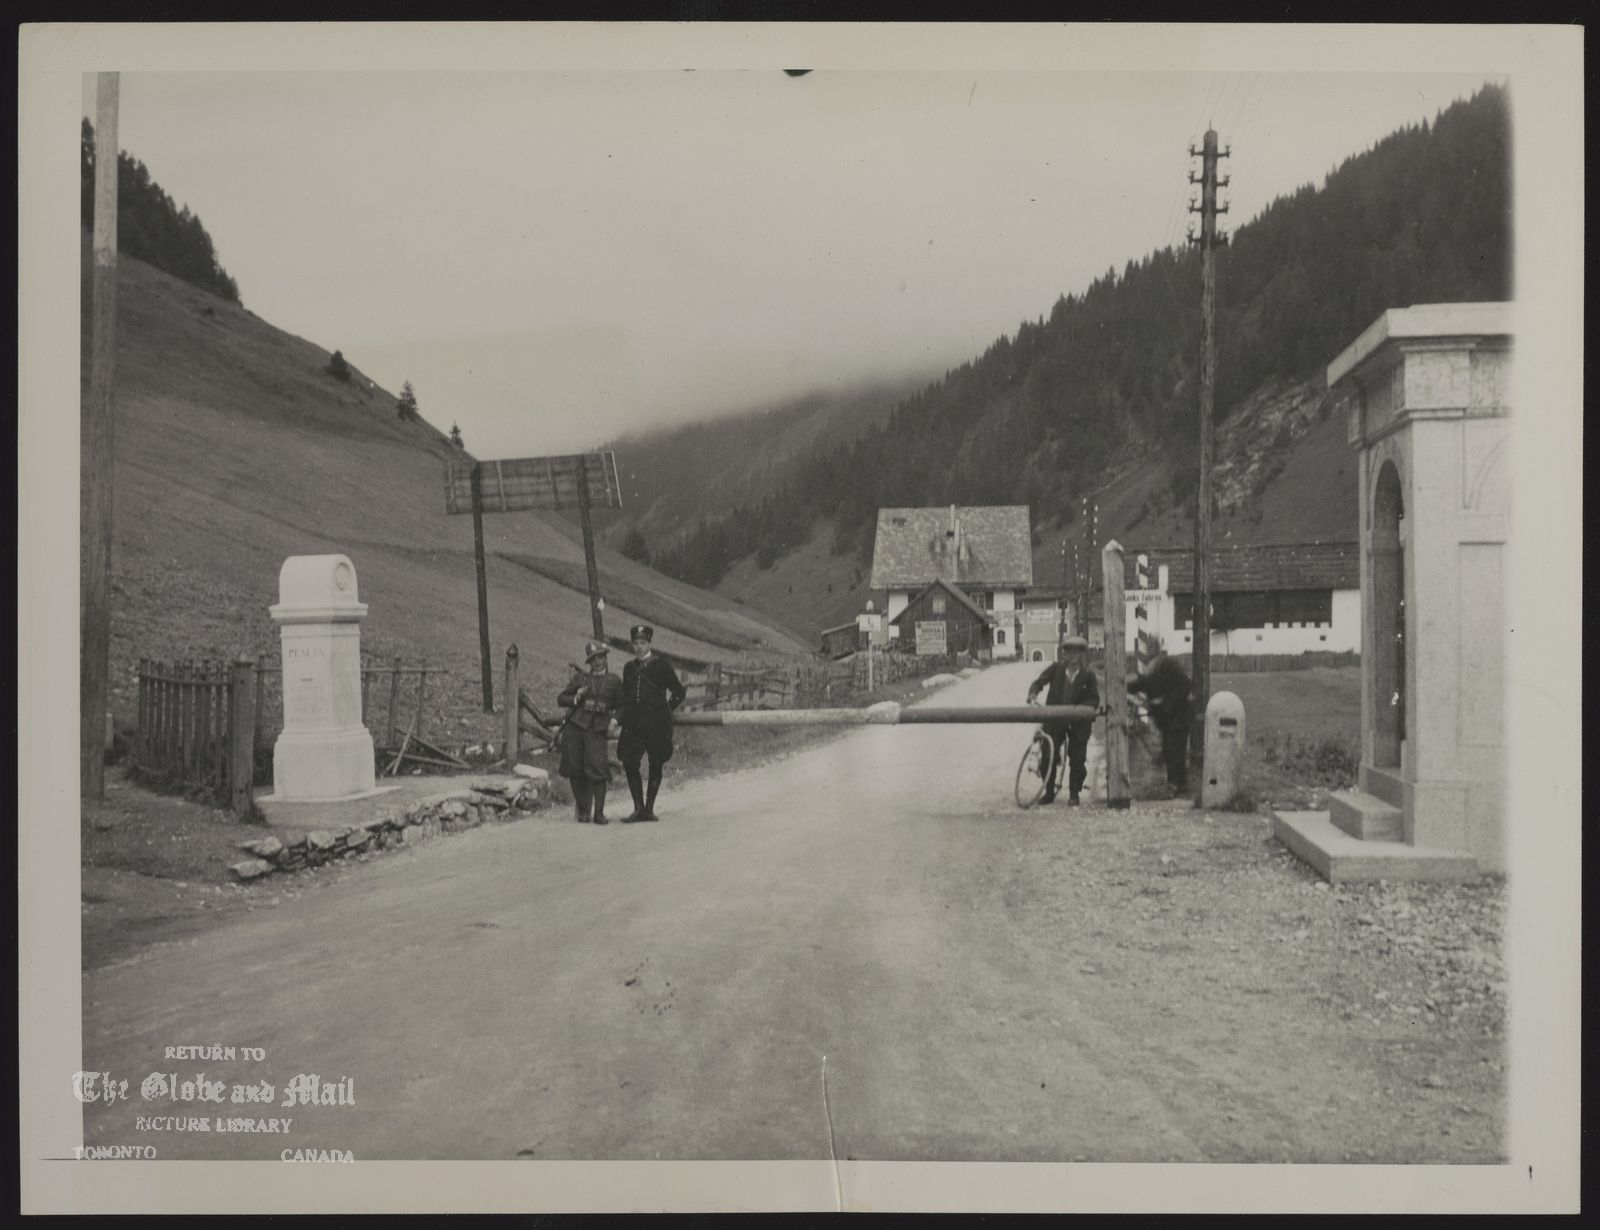 BRENNER PASS (Italy) BRENNER PASS BOUNDARY MARKER THIS GATE AND THE MONUMENT AT THE LEFT, ERECTED IN 1919, MARK THE BOUNDARY ON THE BRENNER PASS BETWEEN ITALY AND GERMAN-OCCUPIED AUSTRIA. AN ITALIAN CARABINIERE AND A CUSTOMS GUARD STAND AT THE LEFT. GERMANY ANNOUNCED ITALY OCCUPIED PASS SEPTEMBER 7. Associated Press Photo OB 9/9/43 1155 AEW FLS 43 A NYC KN NRL SUH MON TORGM PA TWC LON MEX BAIRES